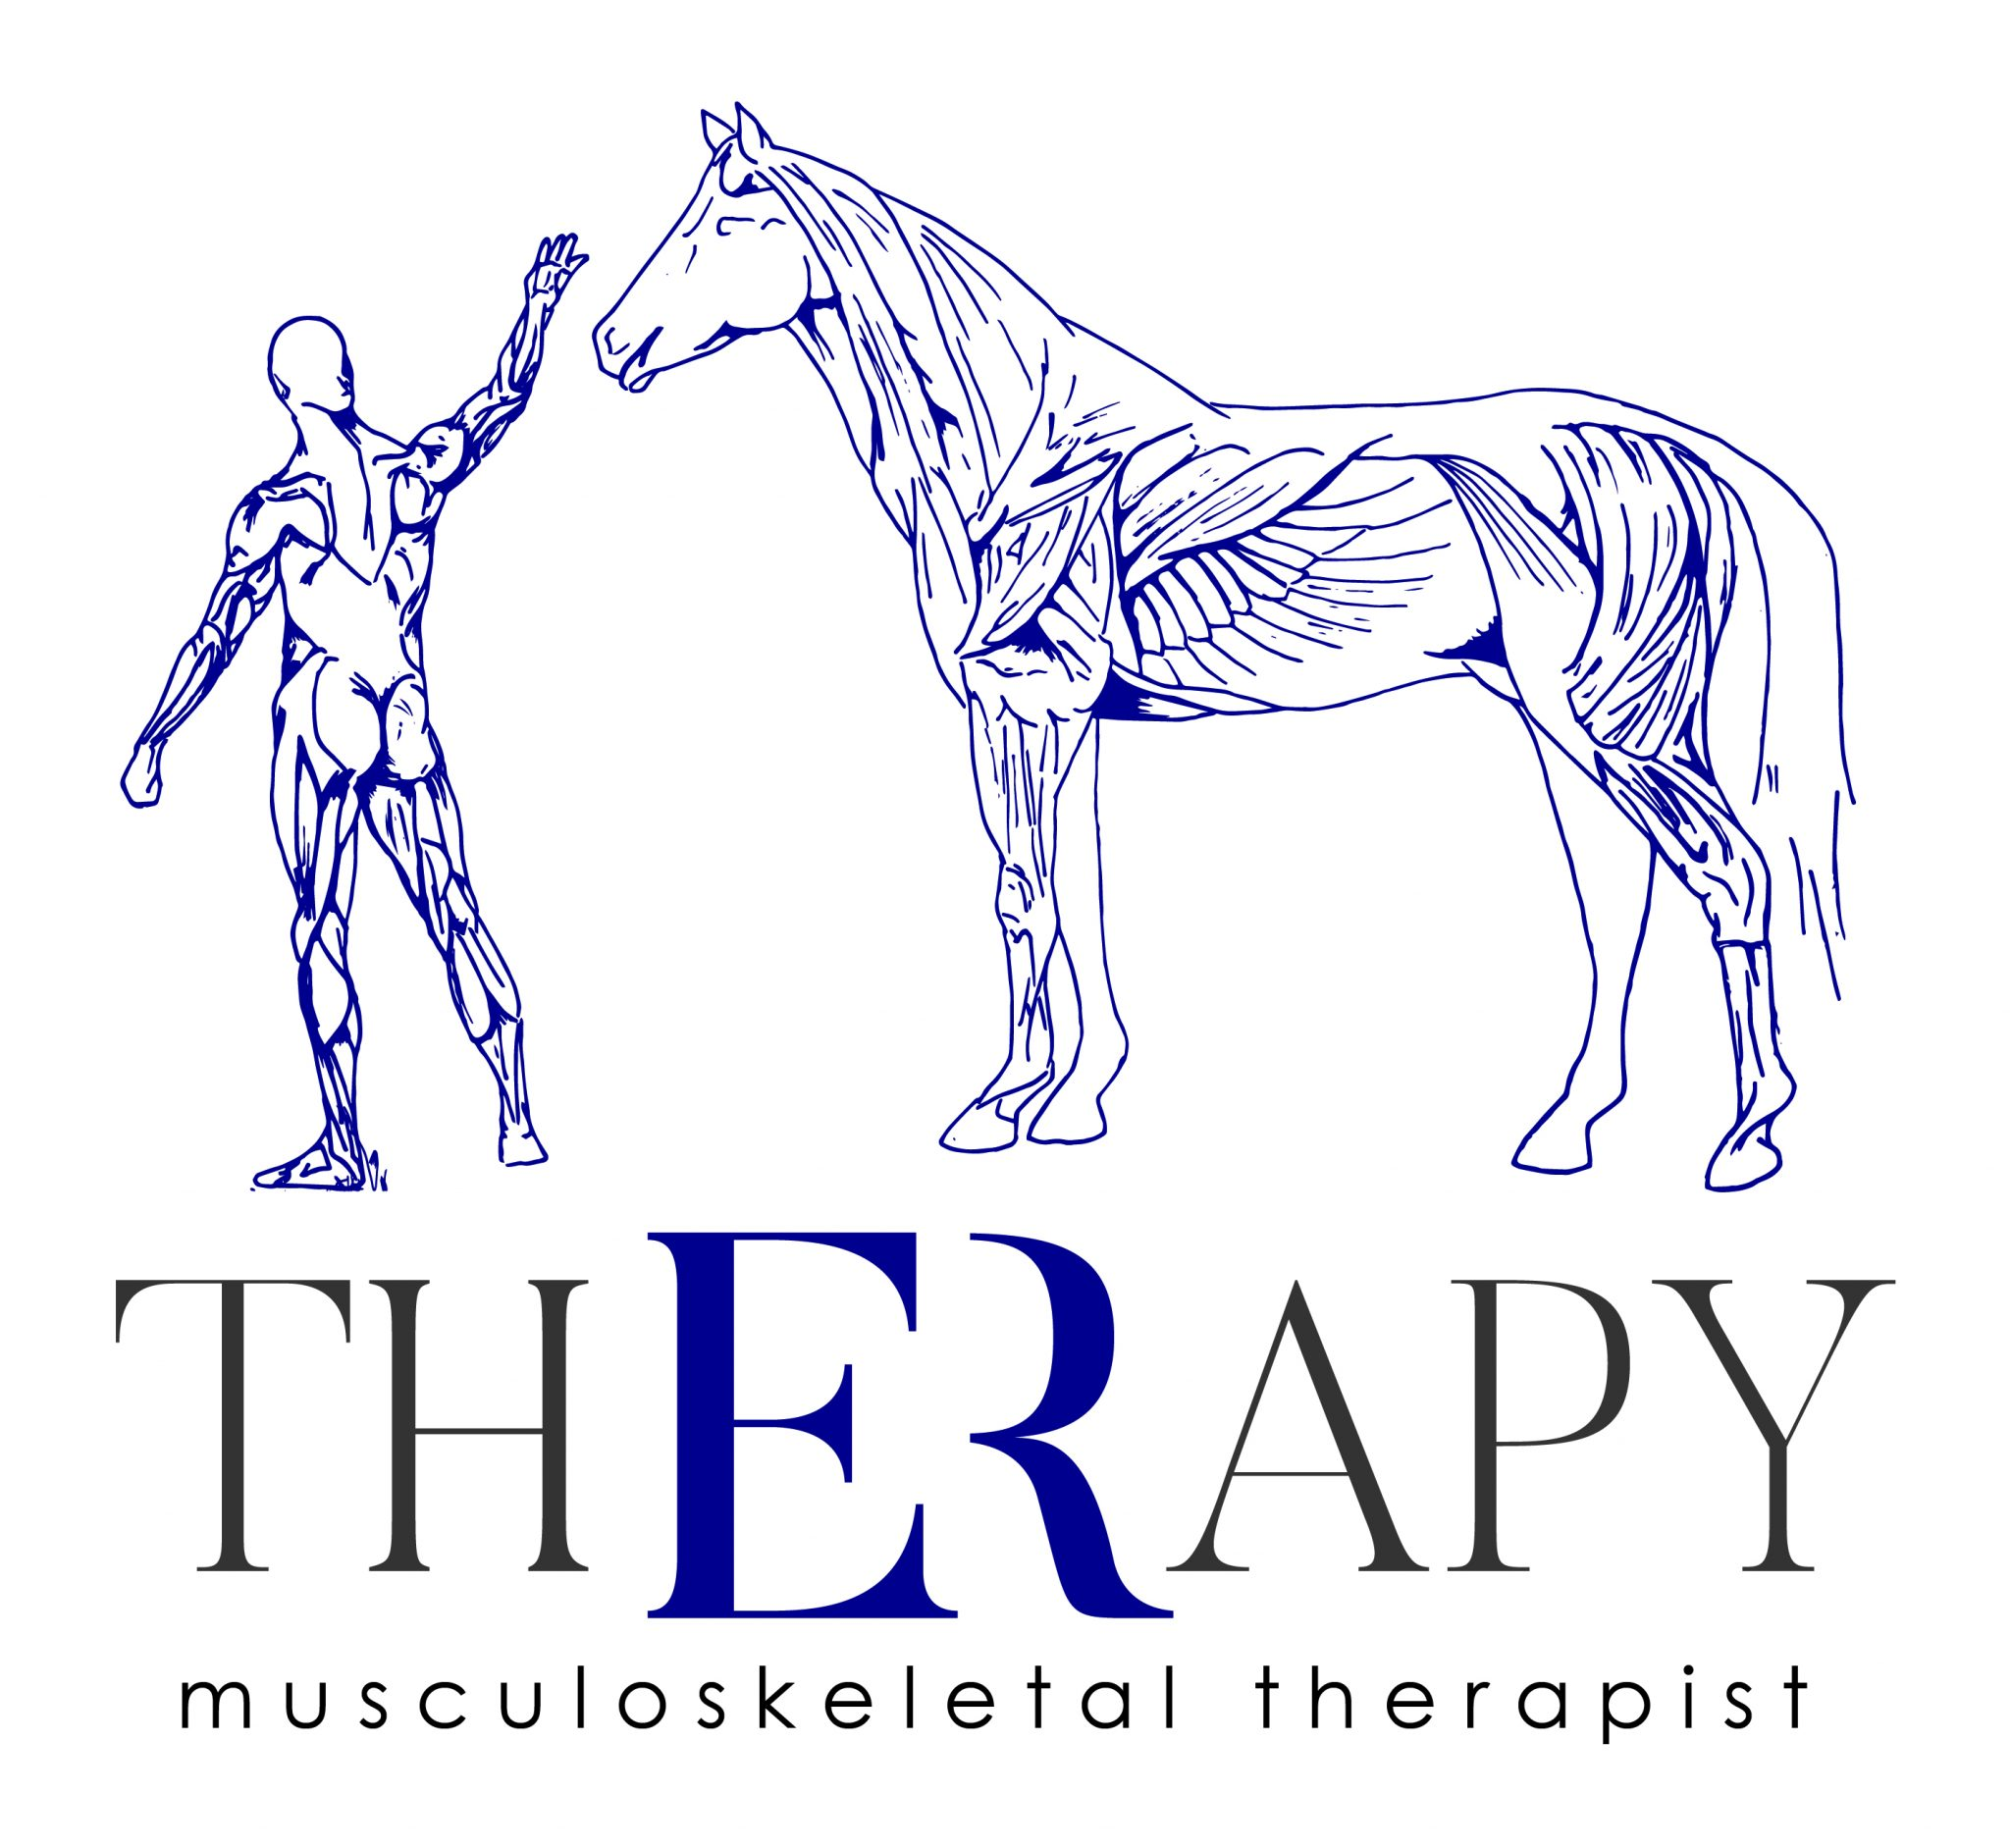 We developed a new logo for ER Therapy to showcase their musculoskeletal therapy service for both human and horses.